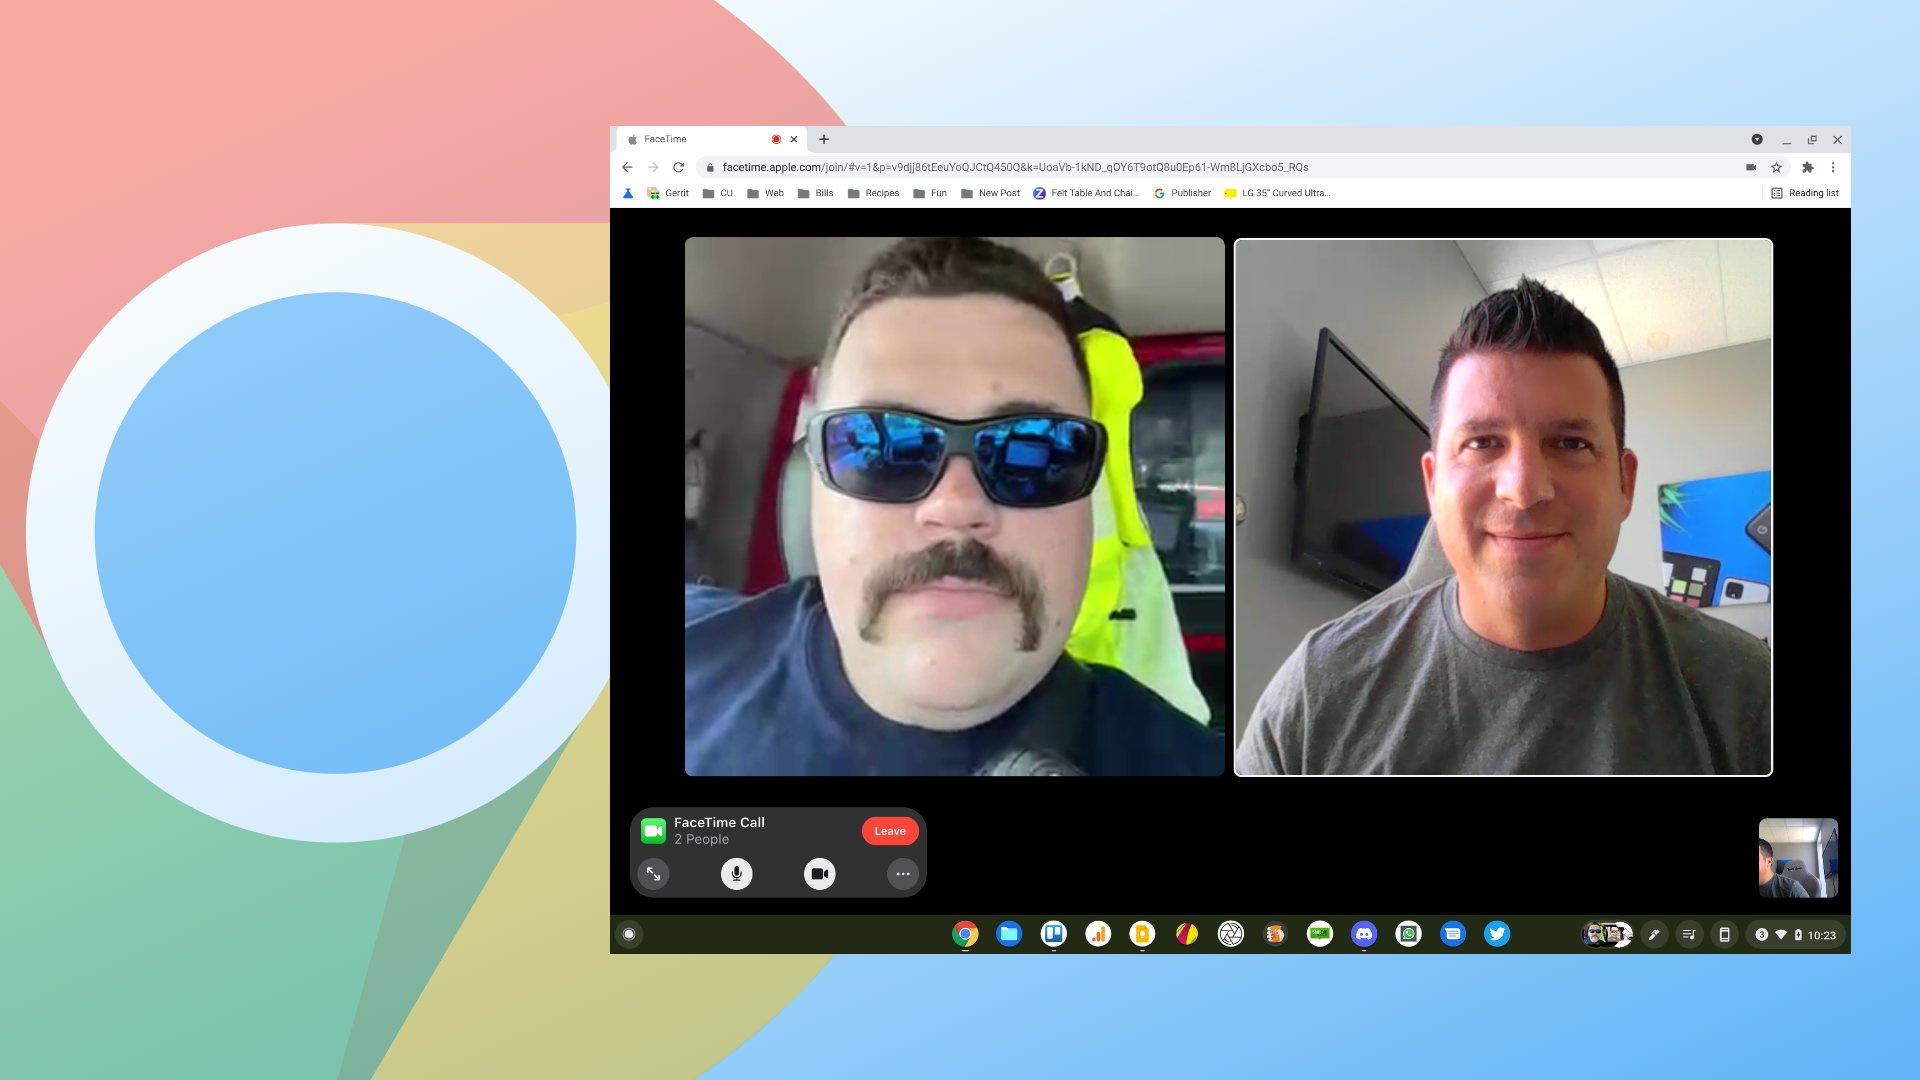 Yes, Apple's Facetime for the Web works just fine on a Chromebook